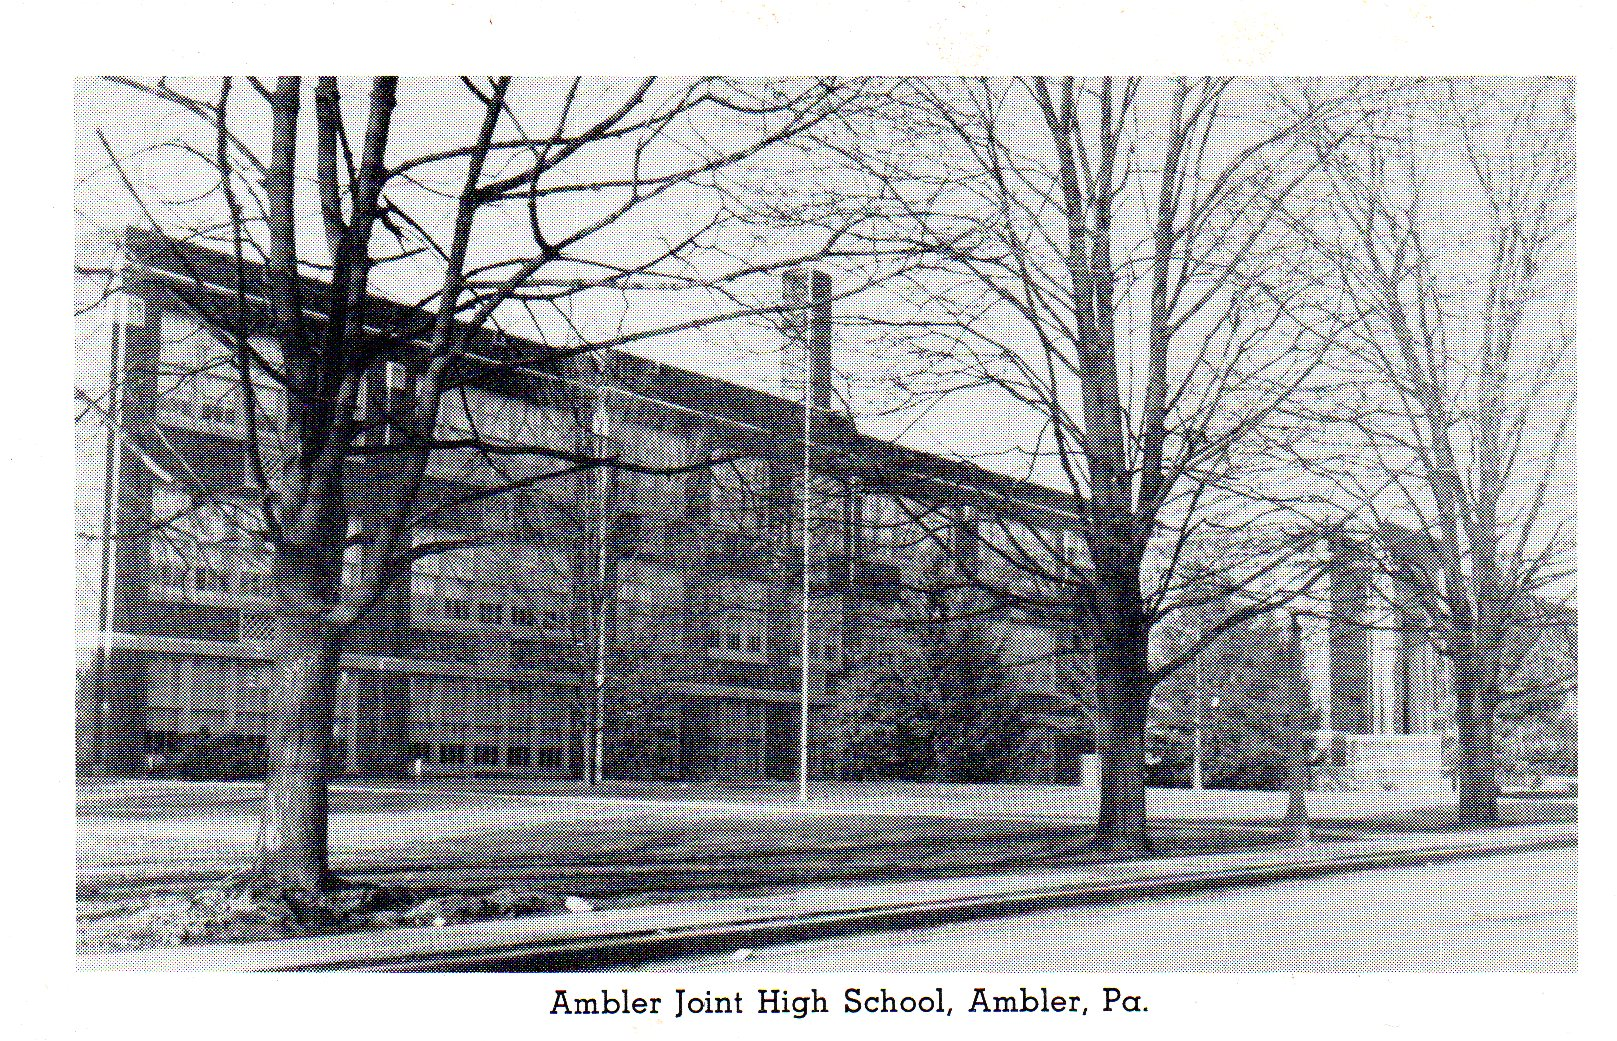 Post Card Collection (E Simon)_2682_88_Ambler Joint High School, Ambler, Pa